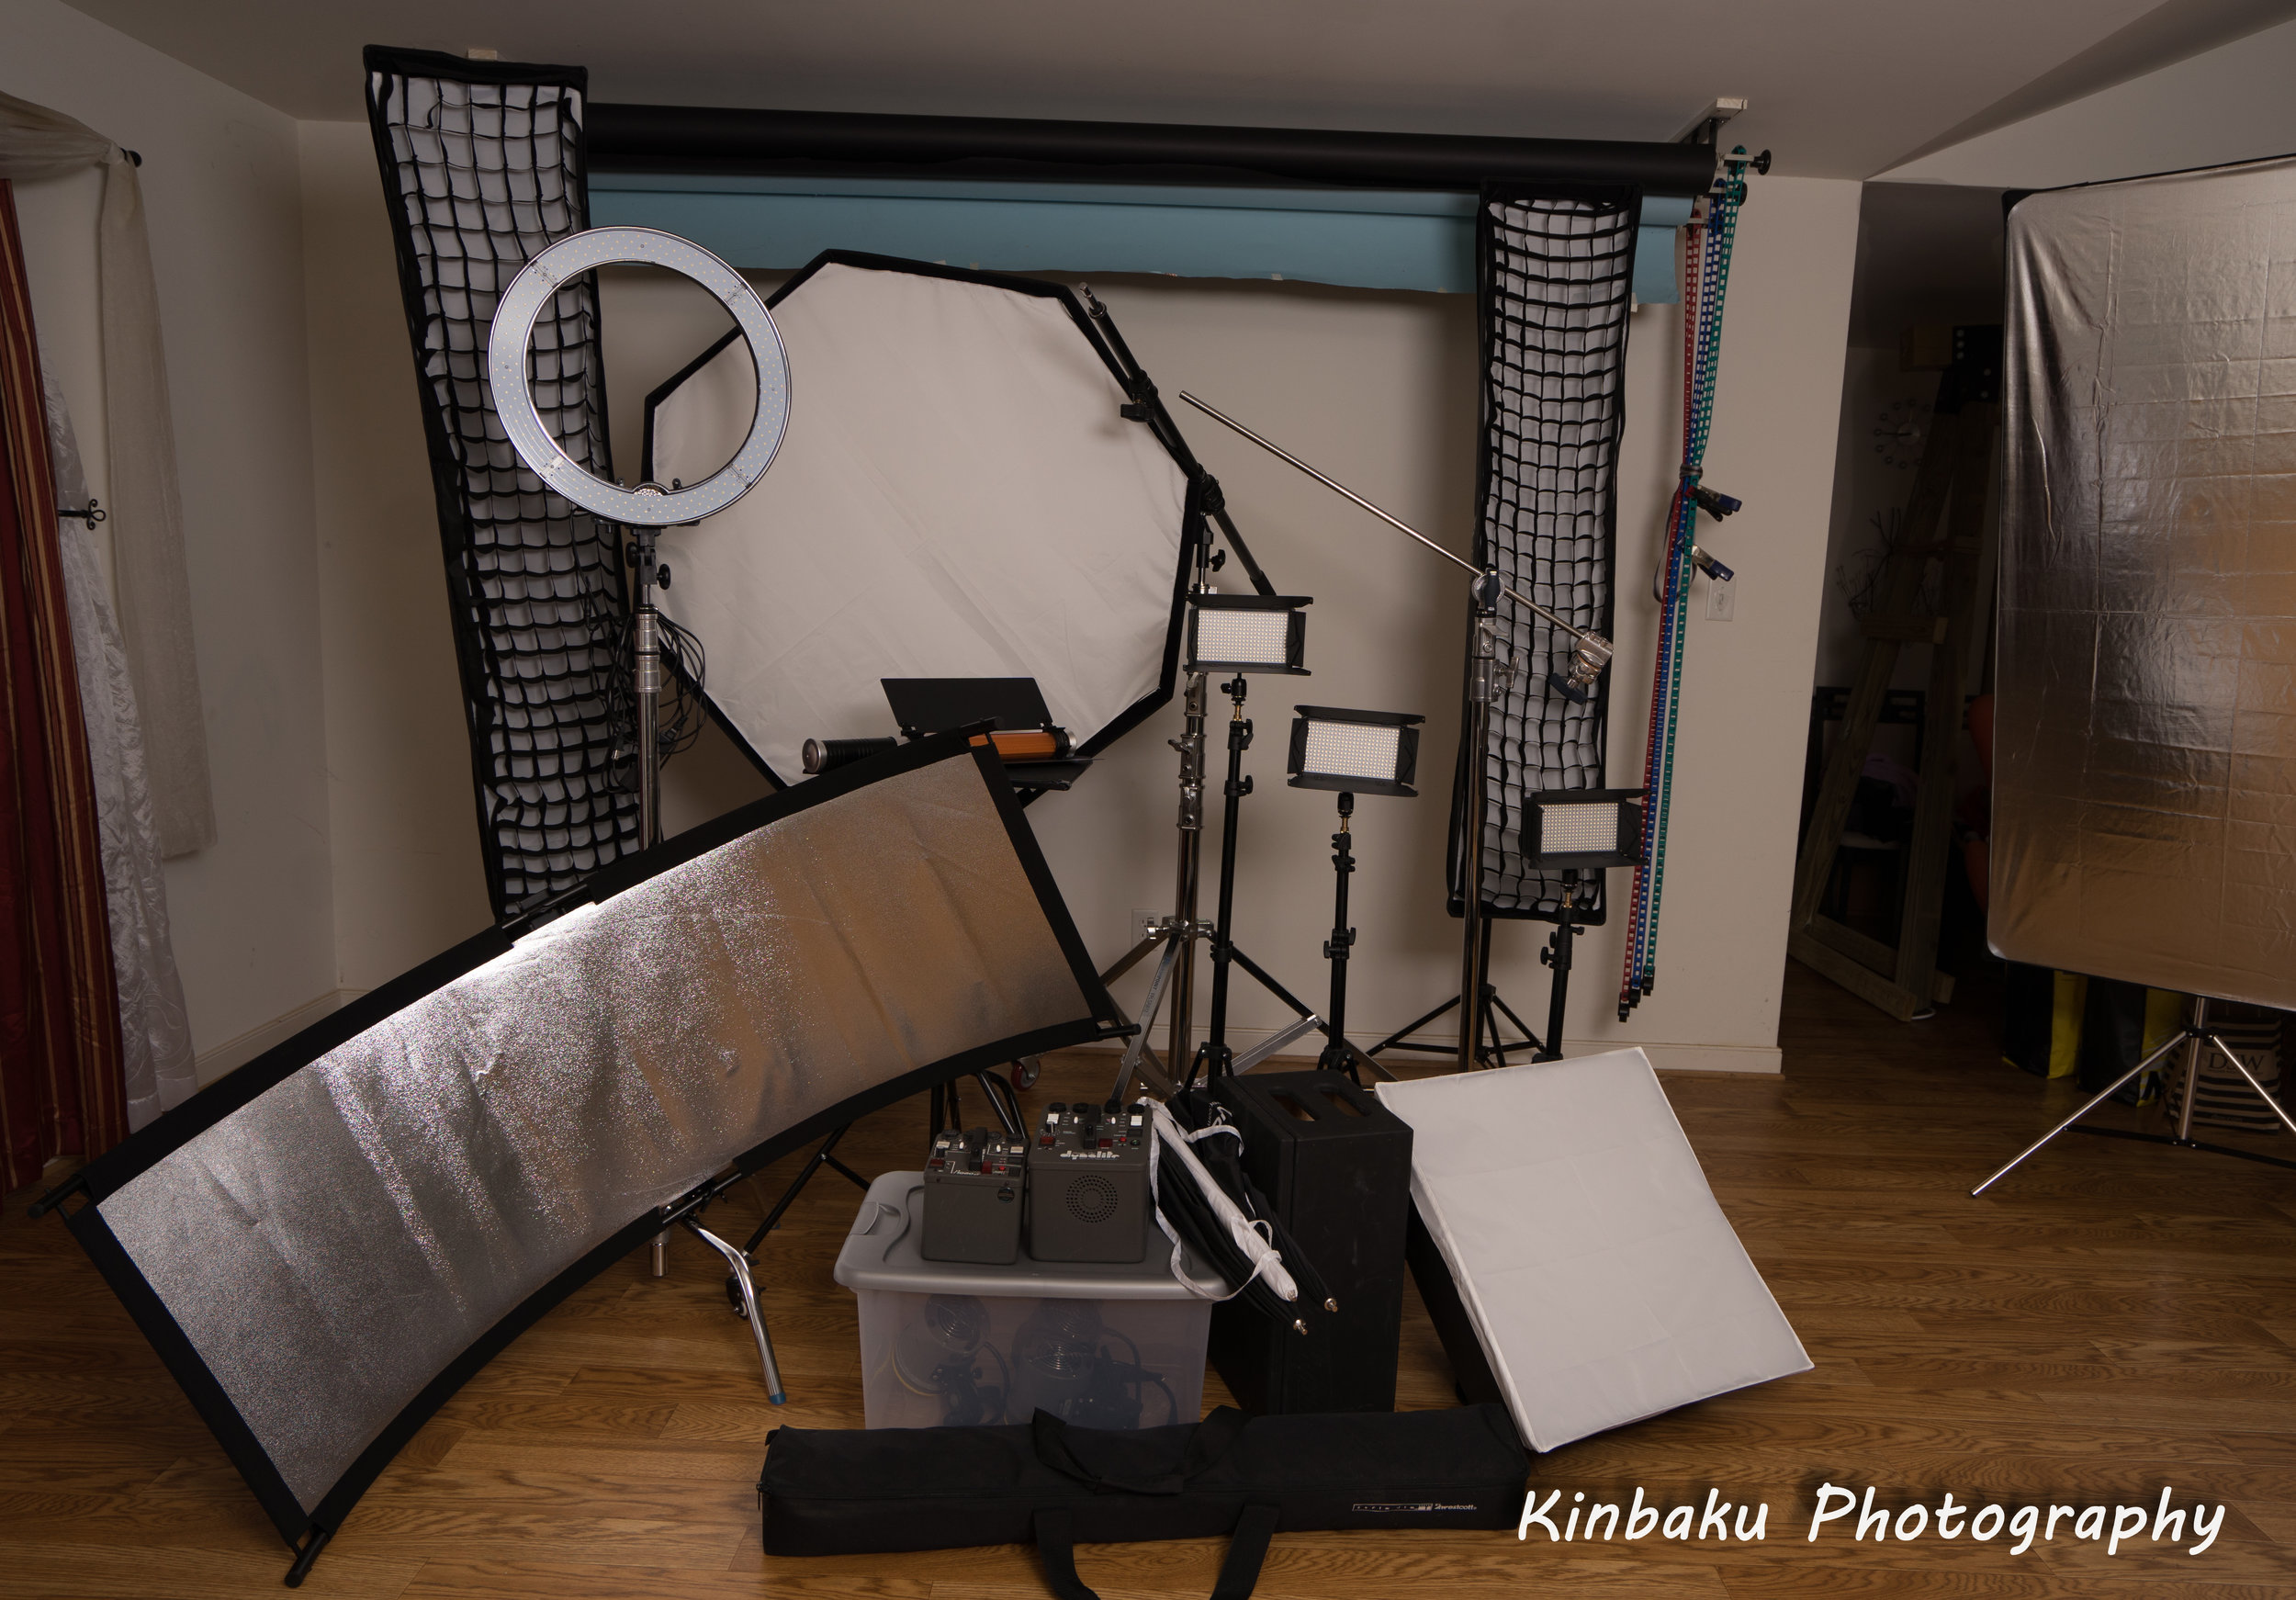 Fully equipped photography studio available to rent